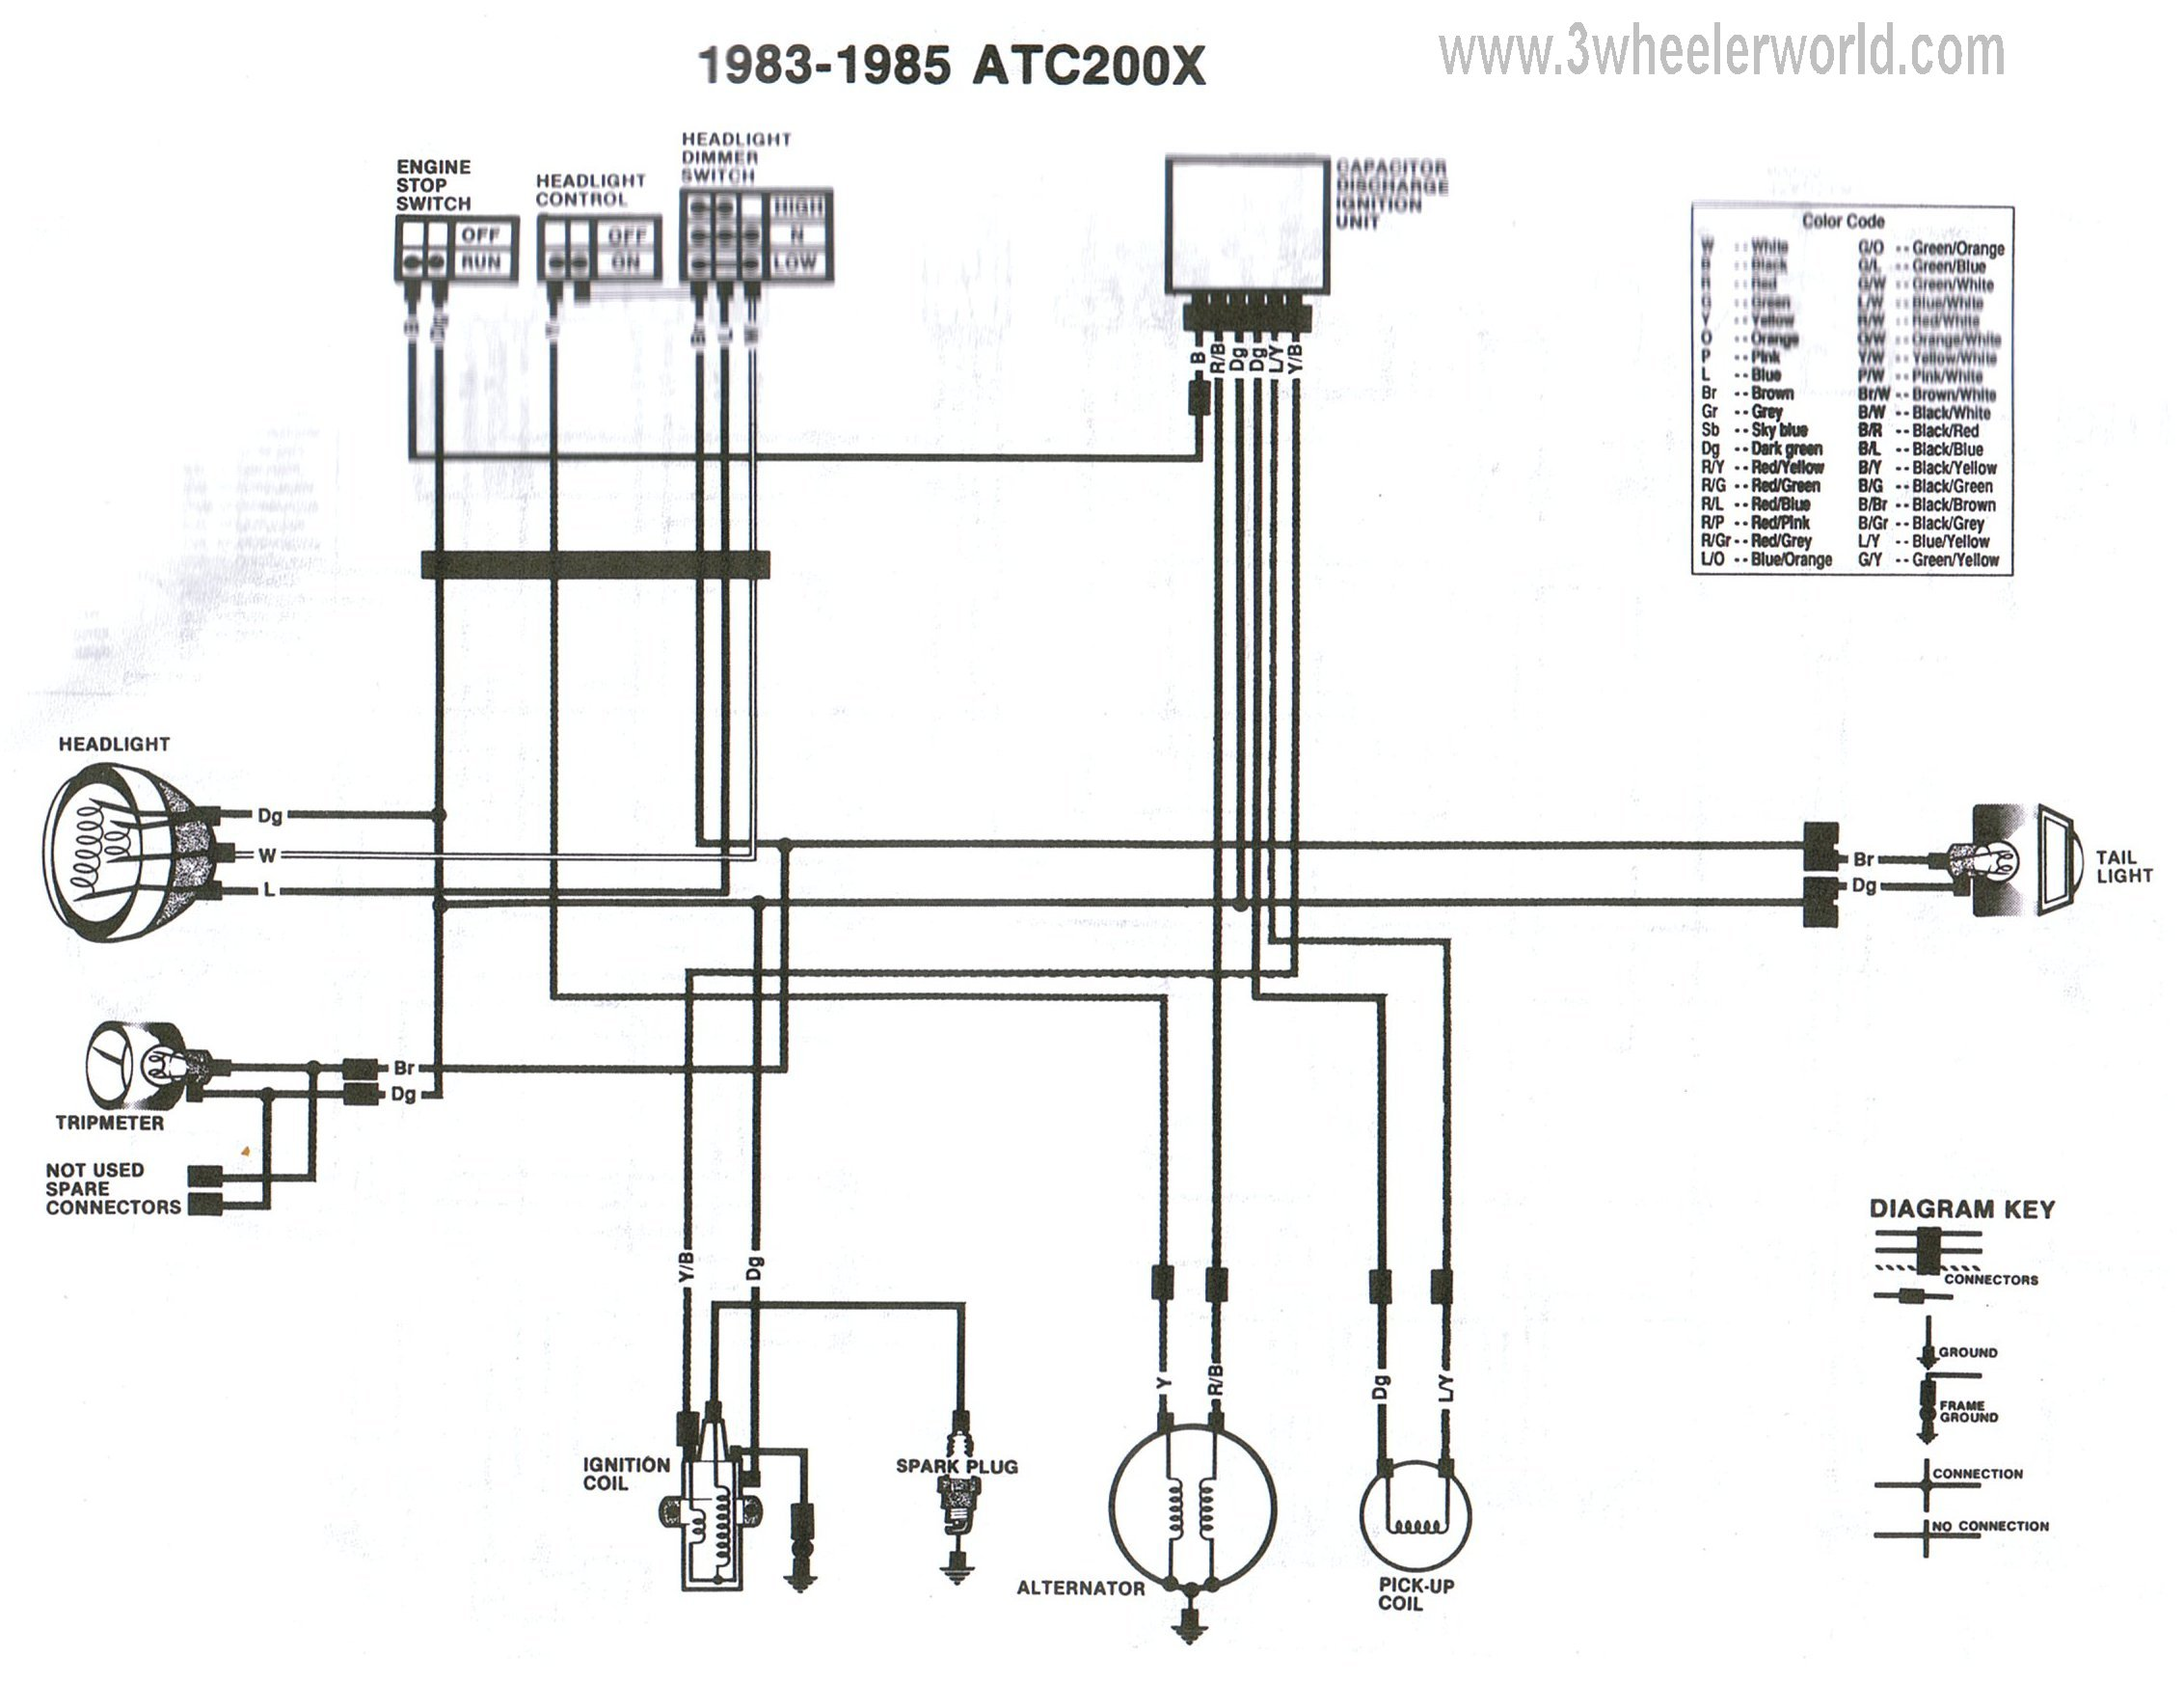 suzuki samurai alternator wiring diagram 9fbf wiring diagram for 1987 suzuki samurai wiring resources  wiring diagram for 1987 suzuki samurai